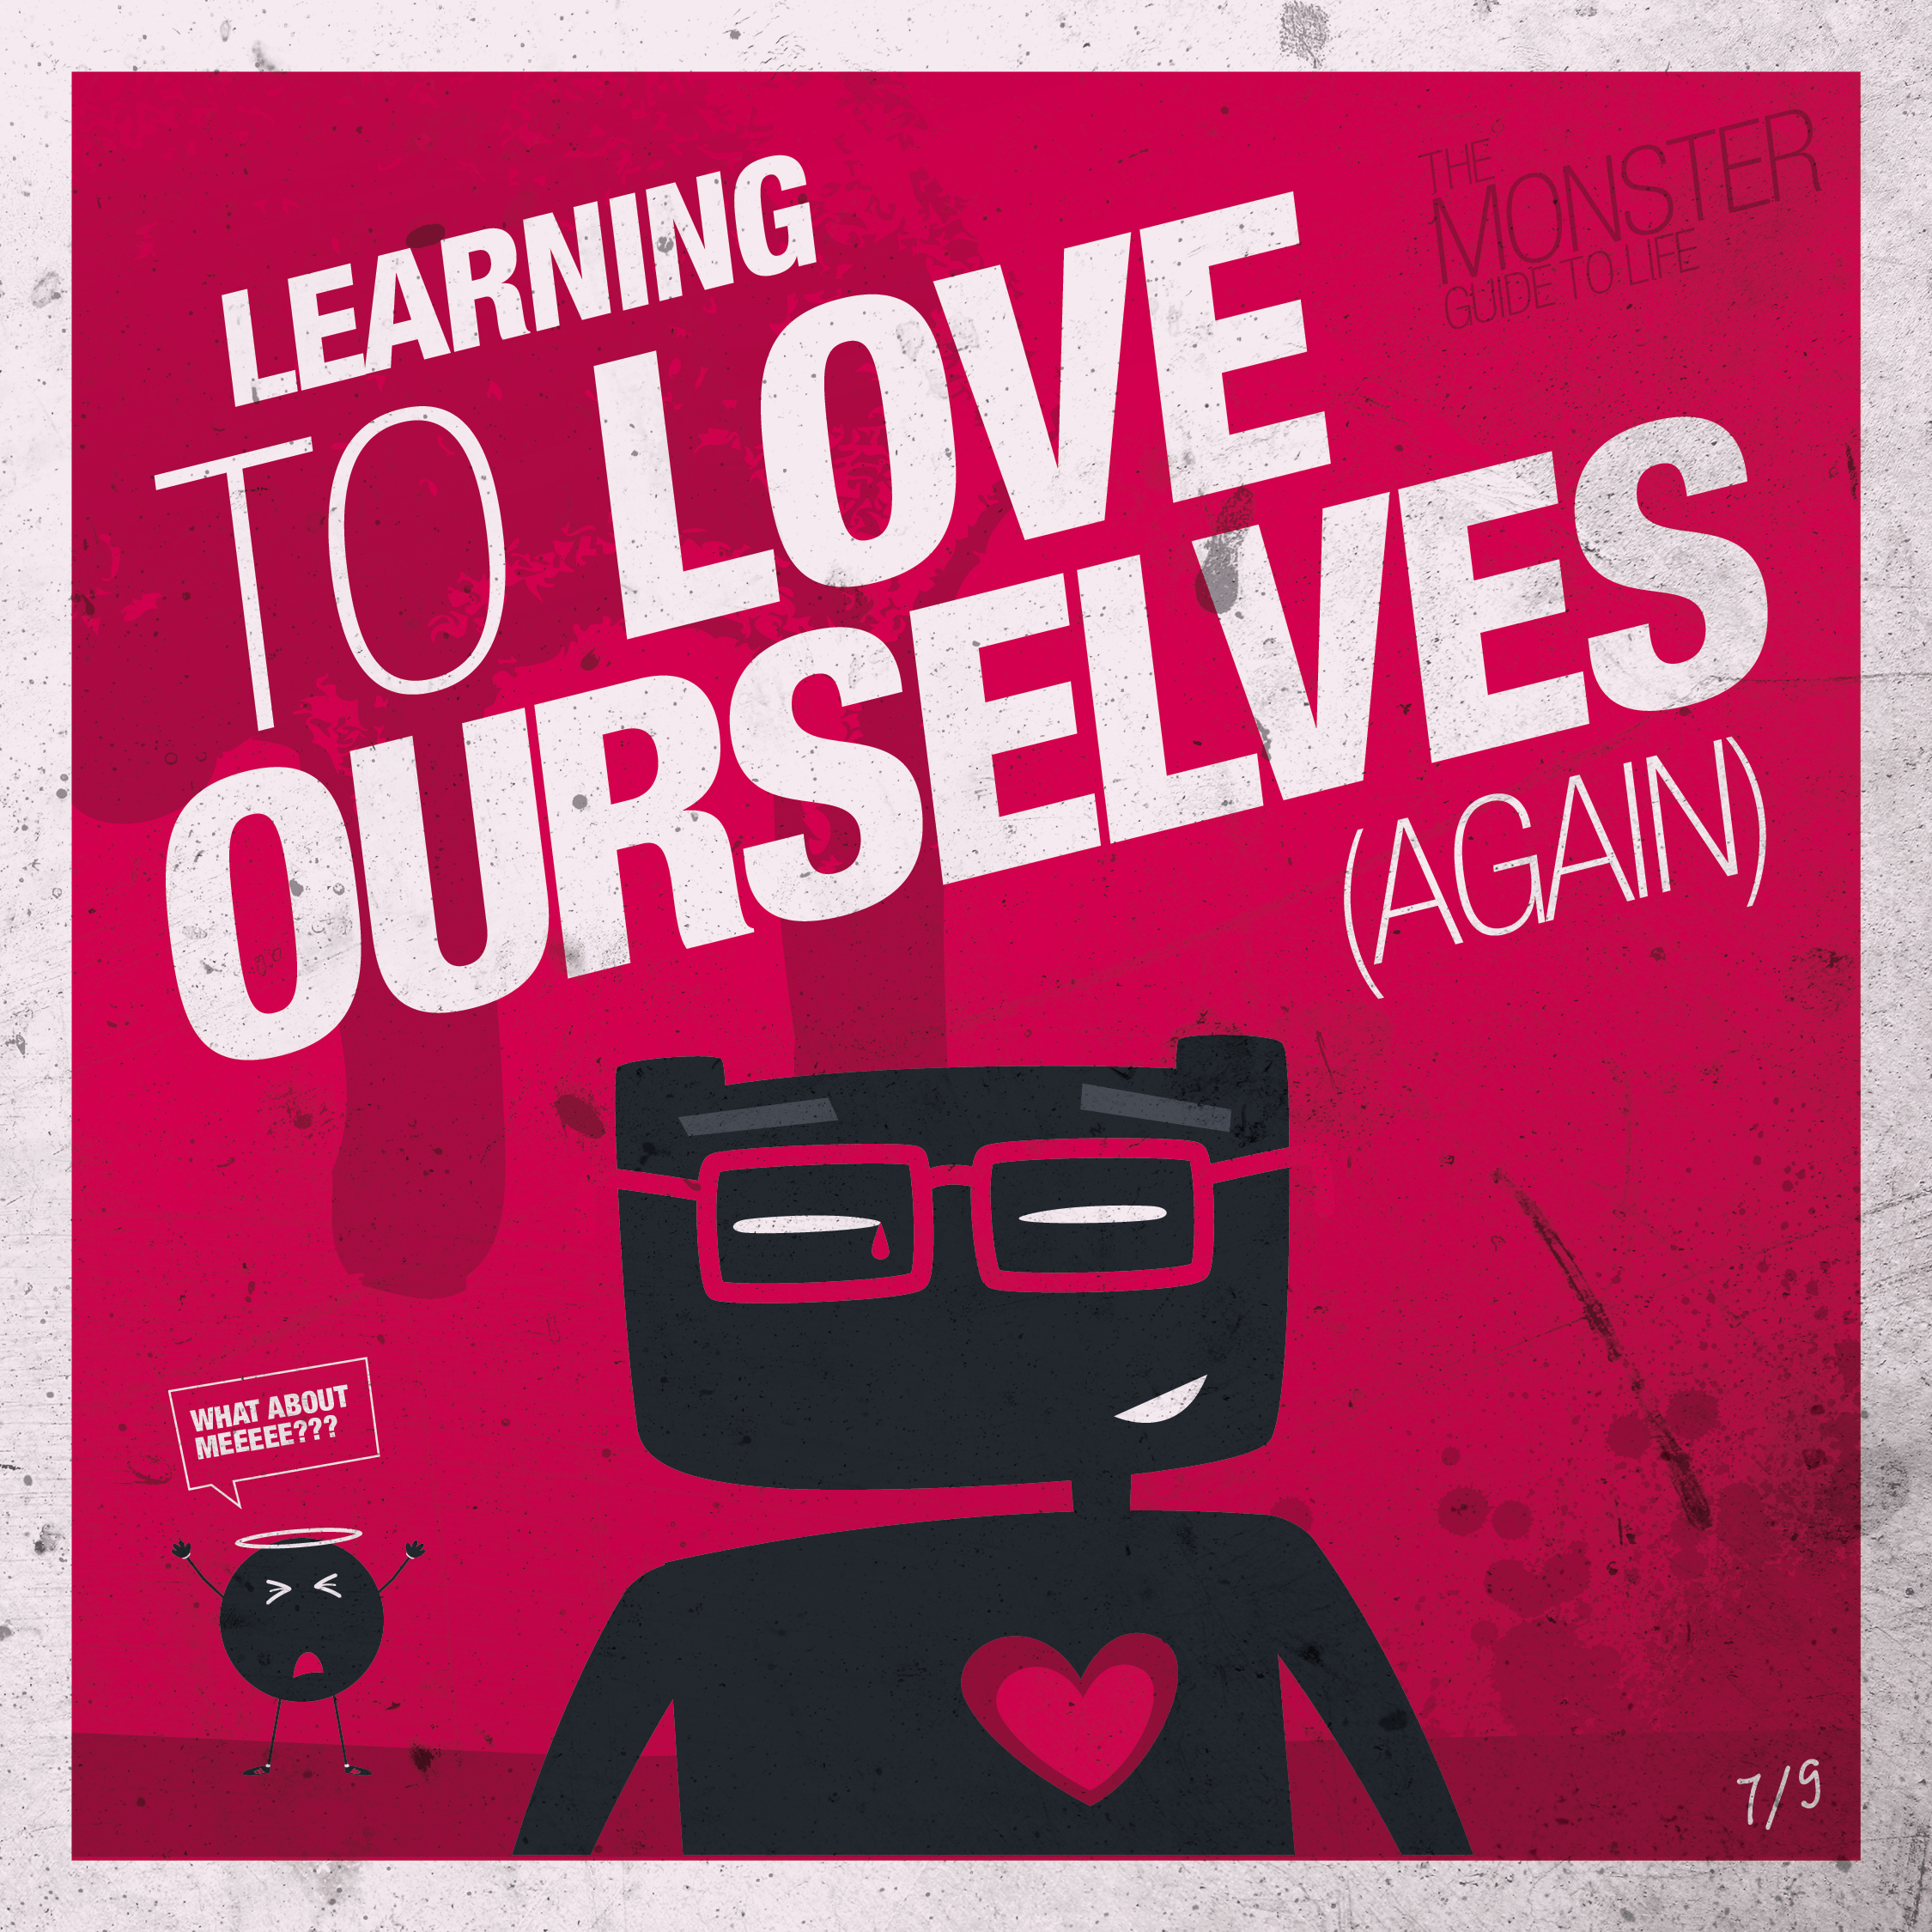 Learning to love ourselves (again)